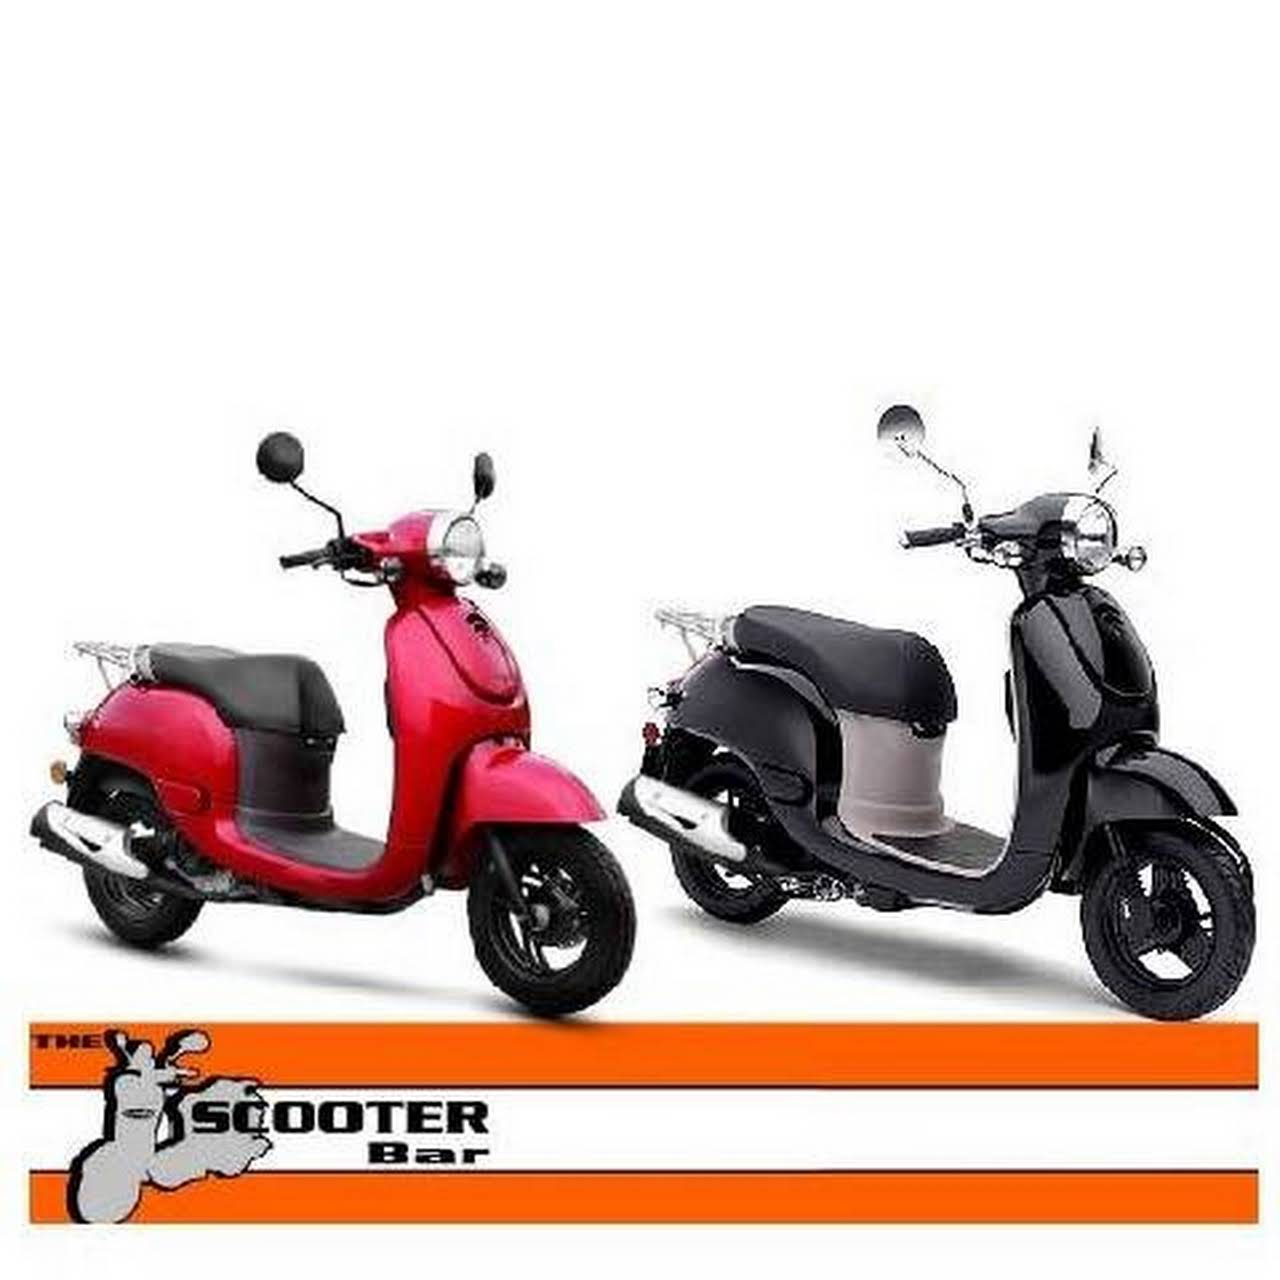 The Scooter Bar - Specialist's In Electric & Petrol Powered